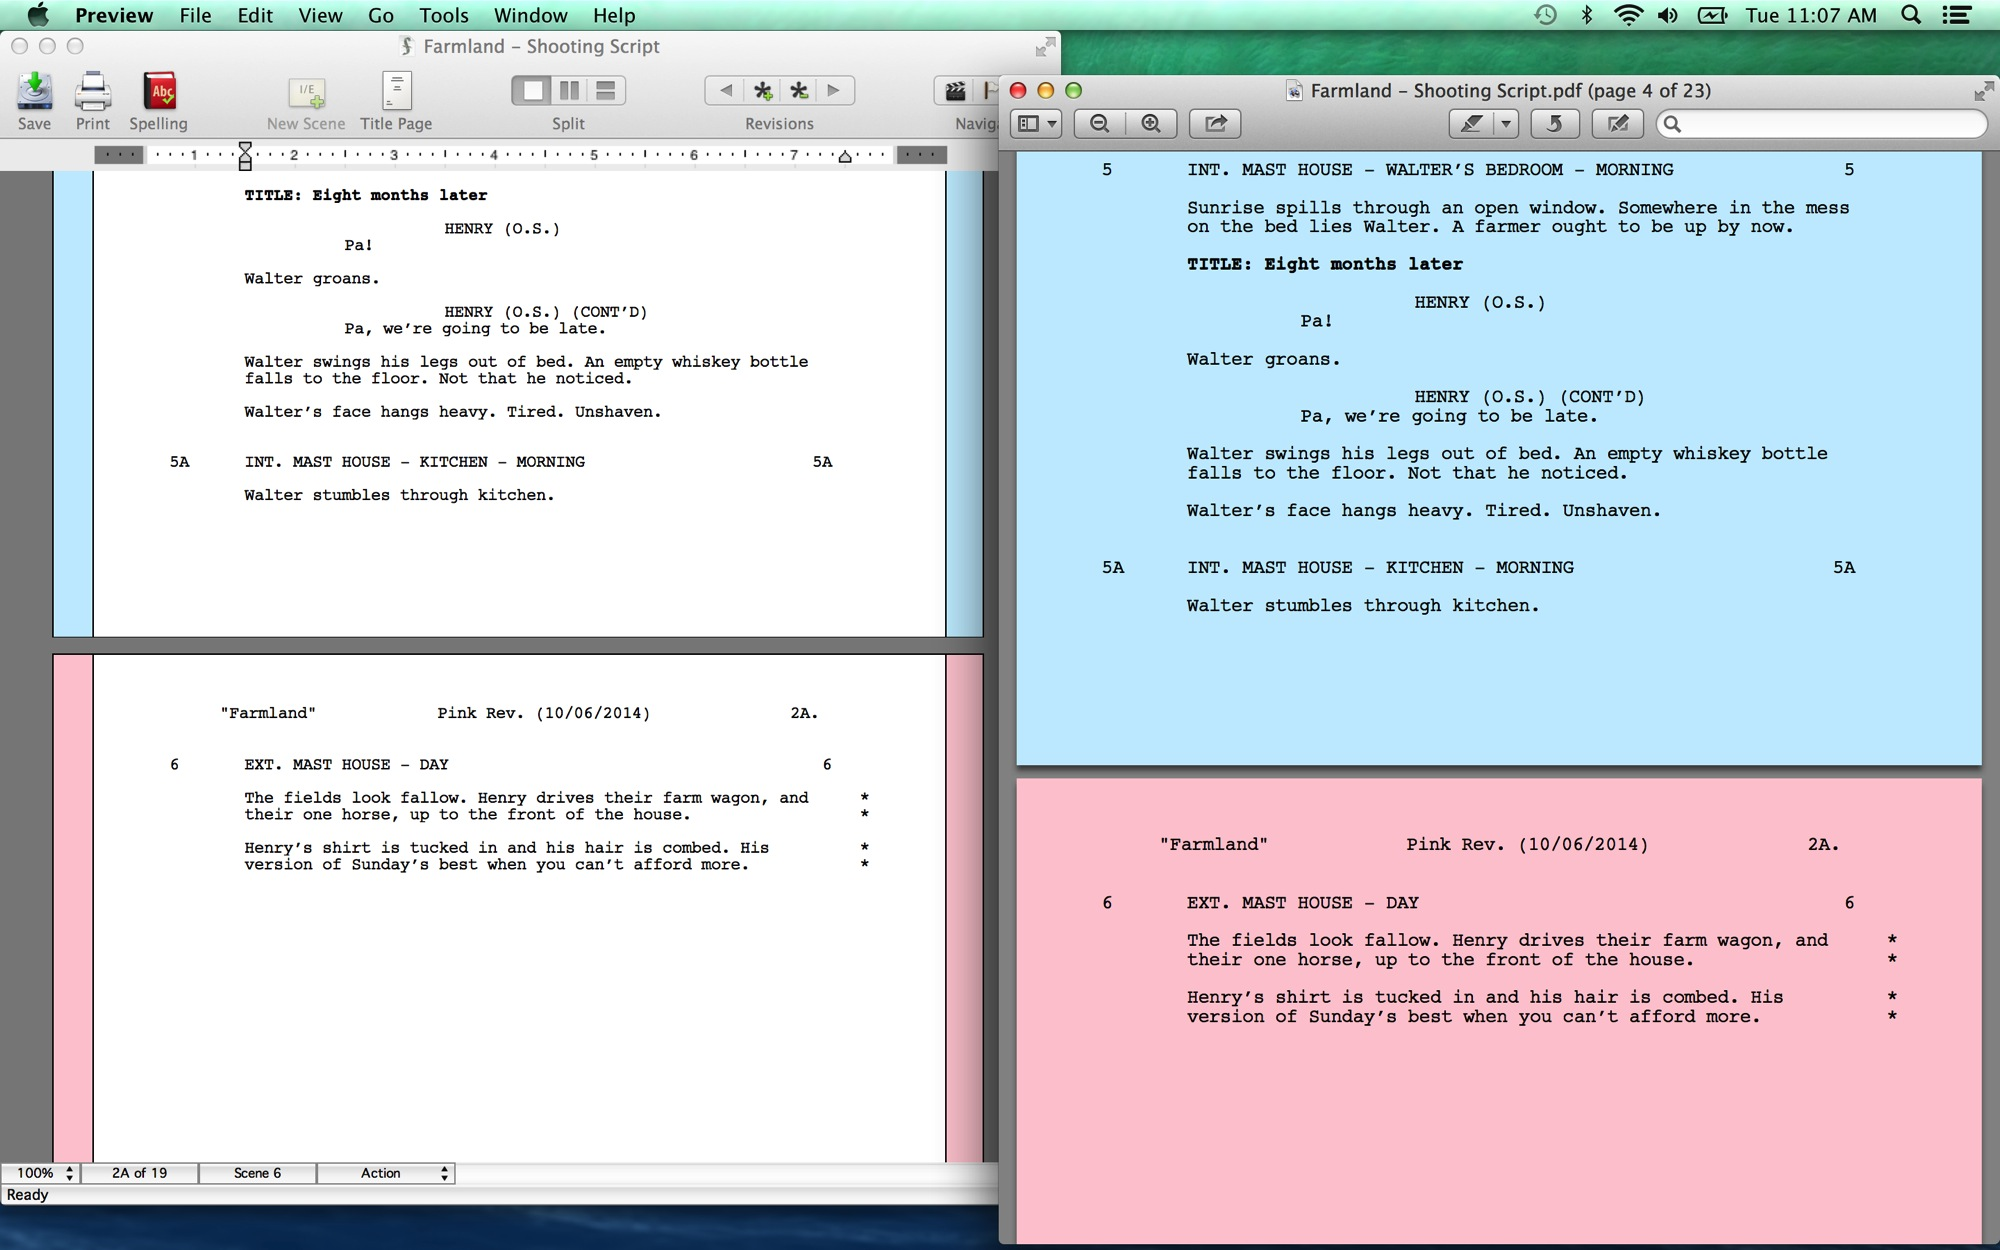 I Did Find This Tab Useful For Quickly Hopping Through The Script To Track How One Character Evolves Colored Pages